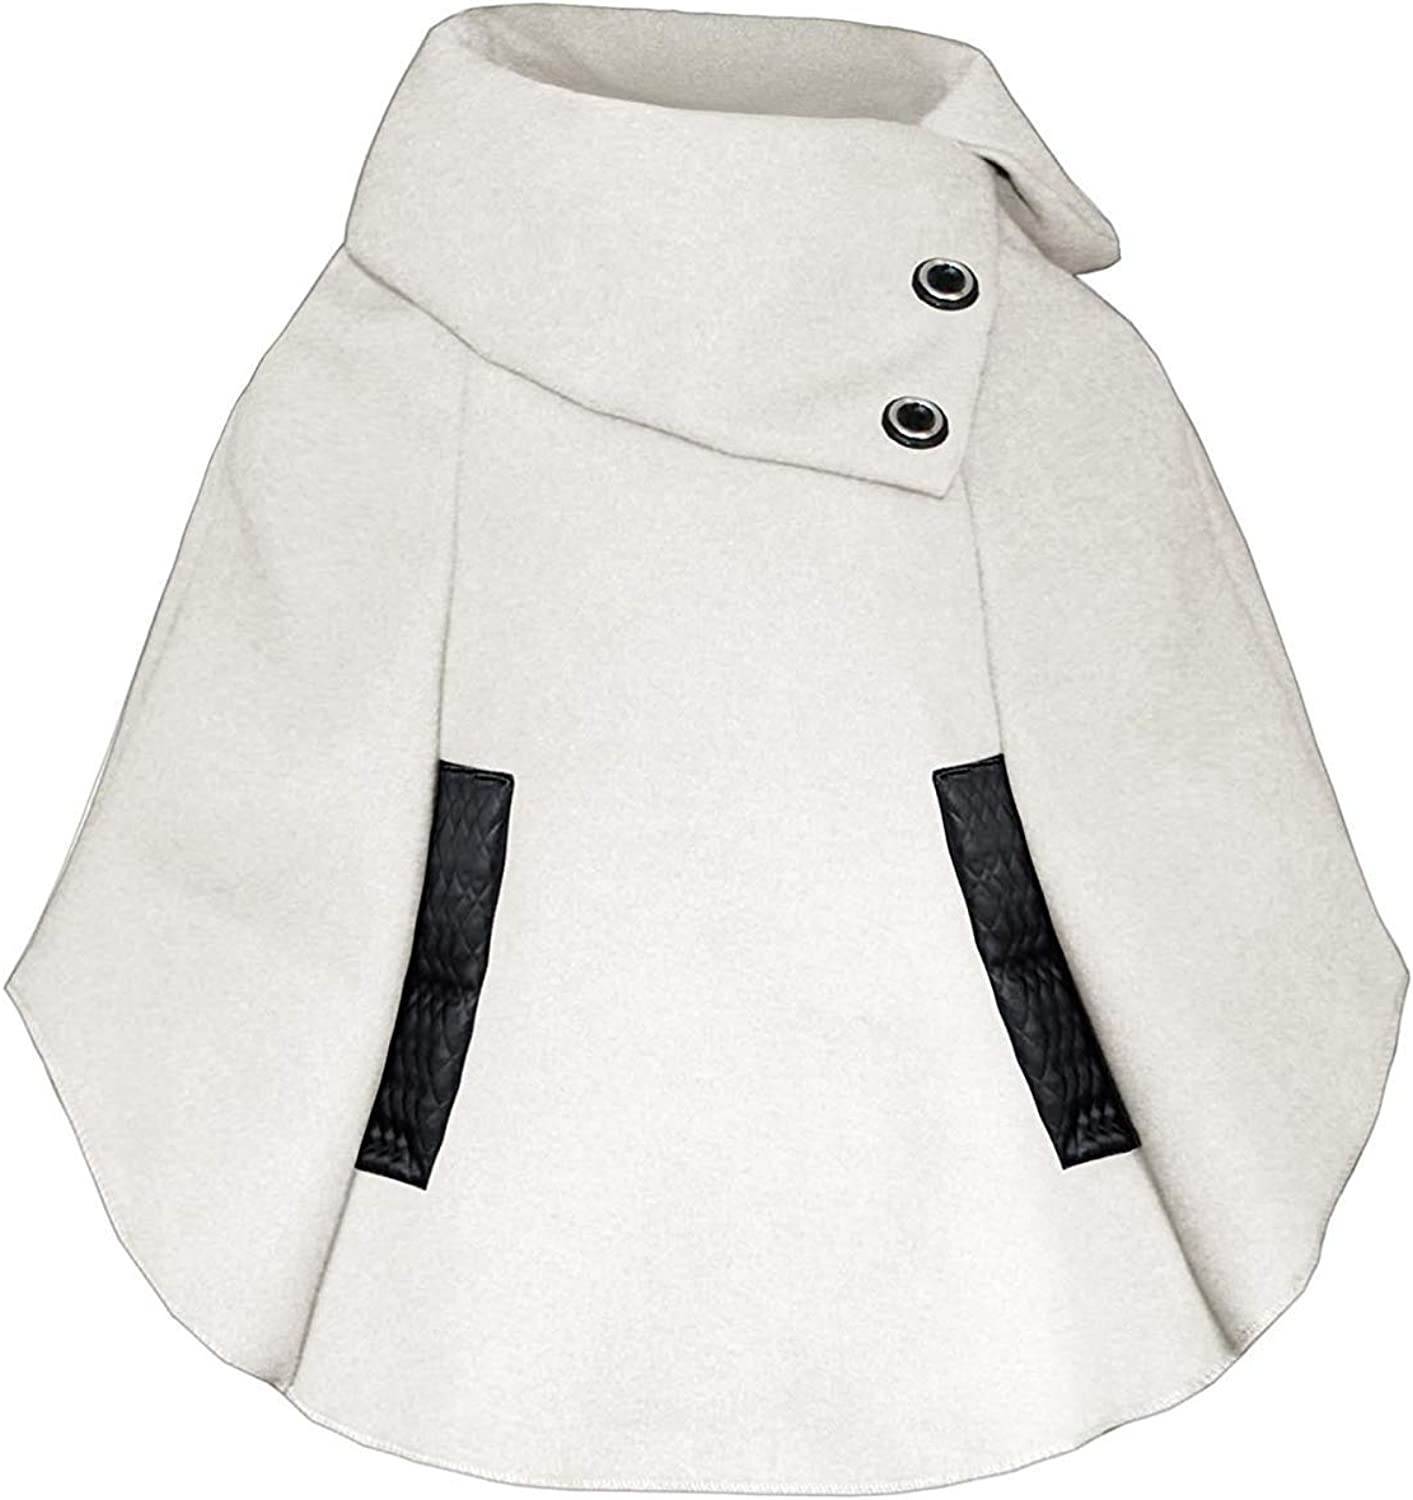 LOTMART Girls Pull on Cape Kids Asymmetrical Poncho Button Detail Coat